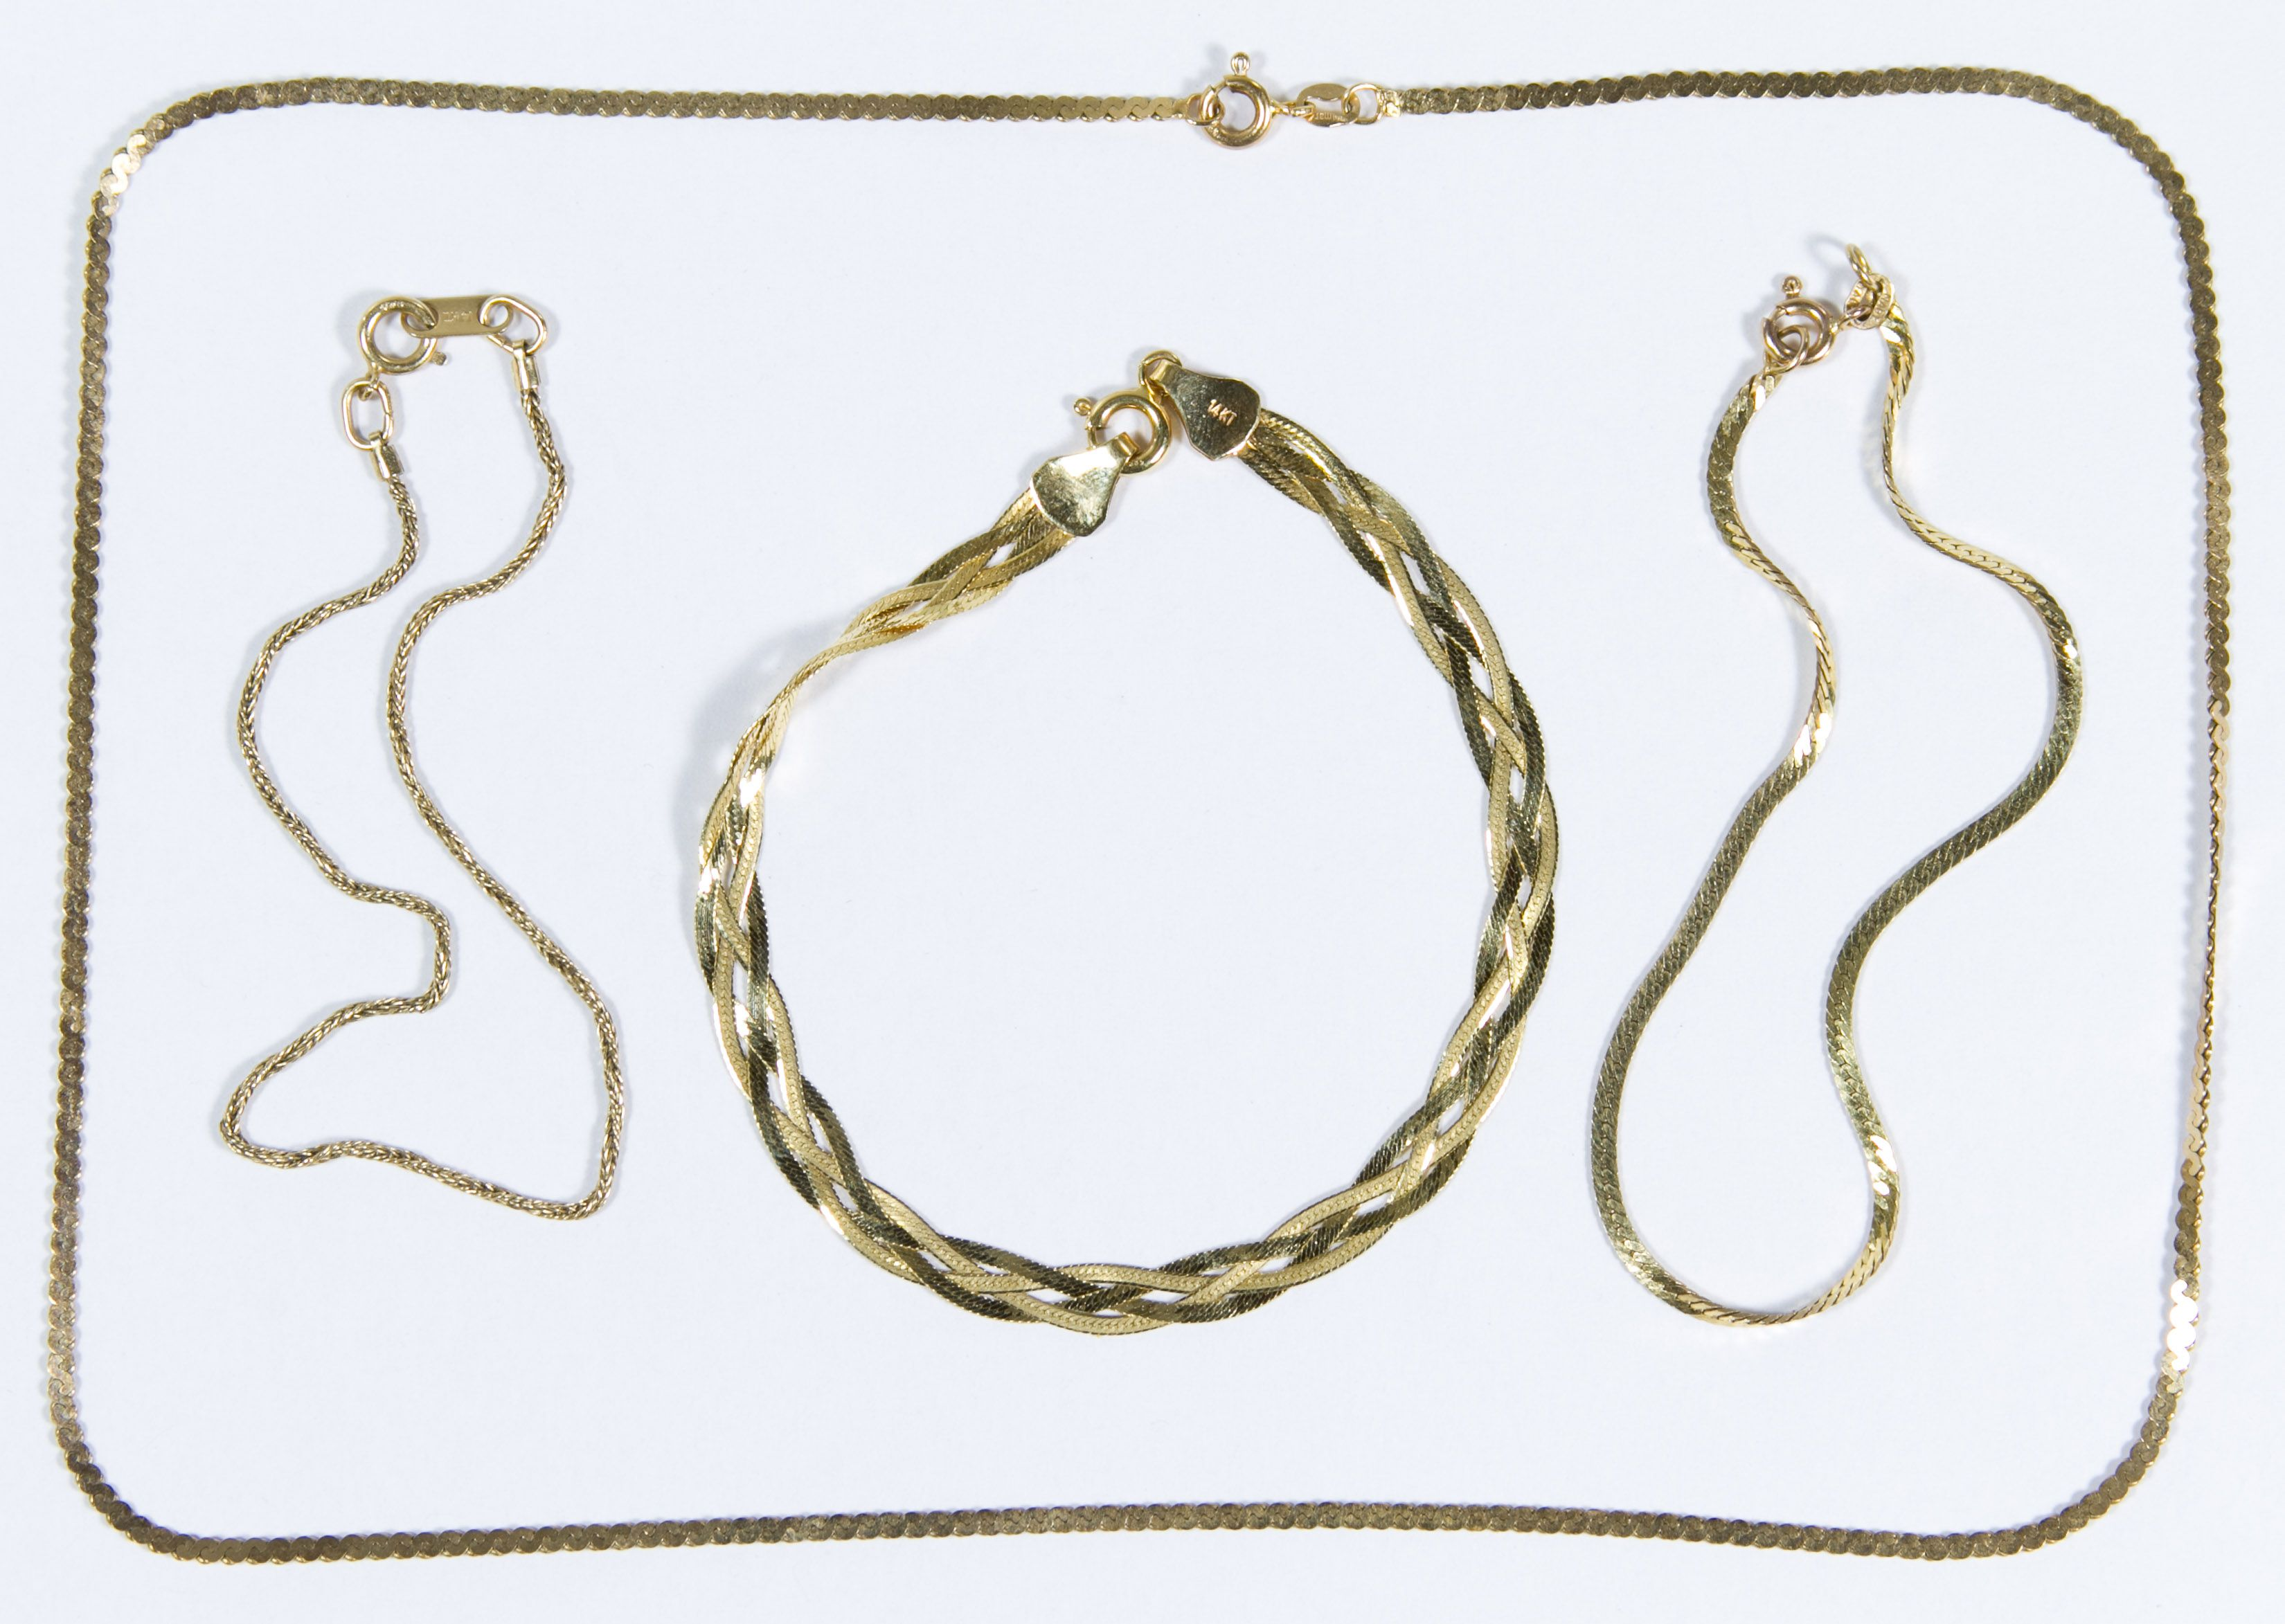 Lot 306: 14k Gold Jewelry Assortment; Four pieces including three bracelets and a necklace